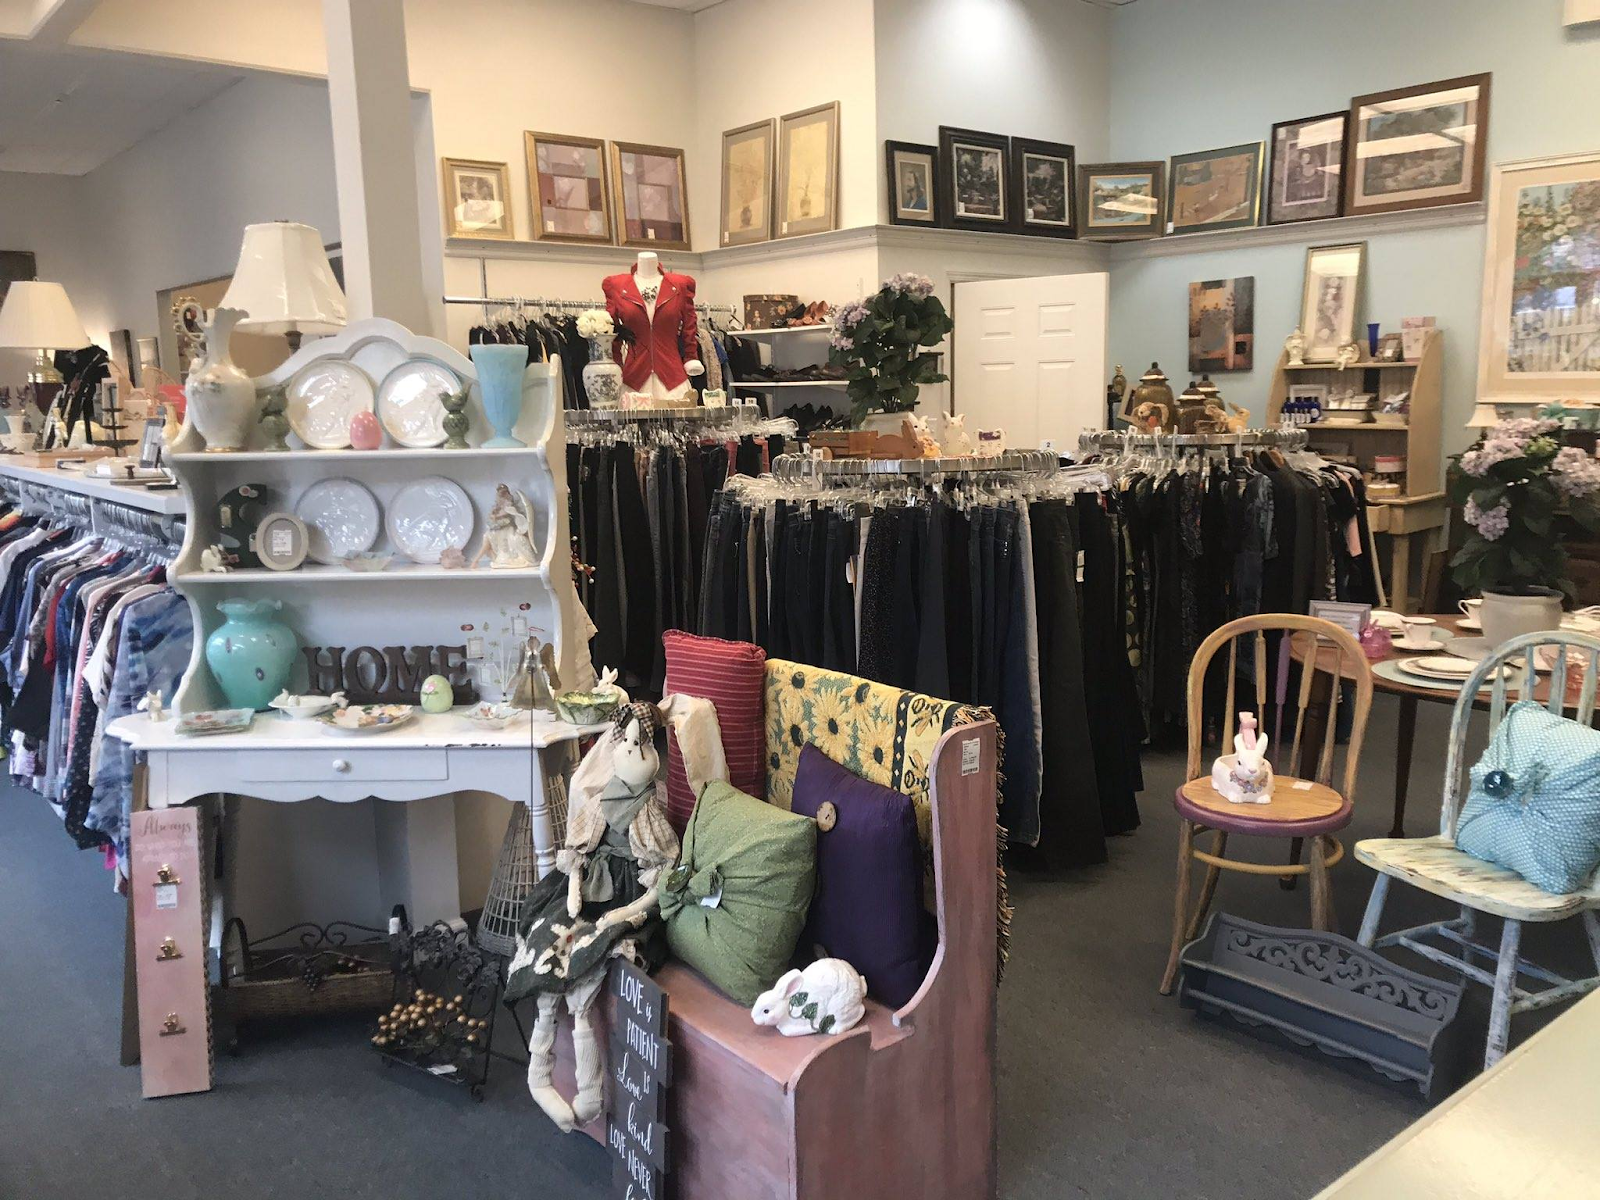 The Buttonhole Women's Consignment and Furniture